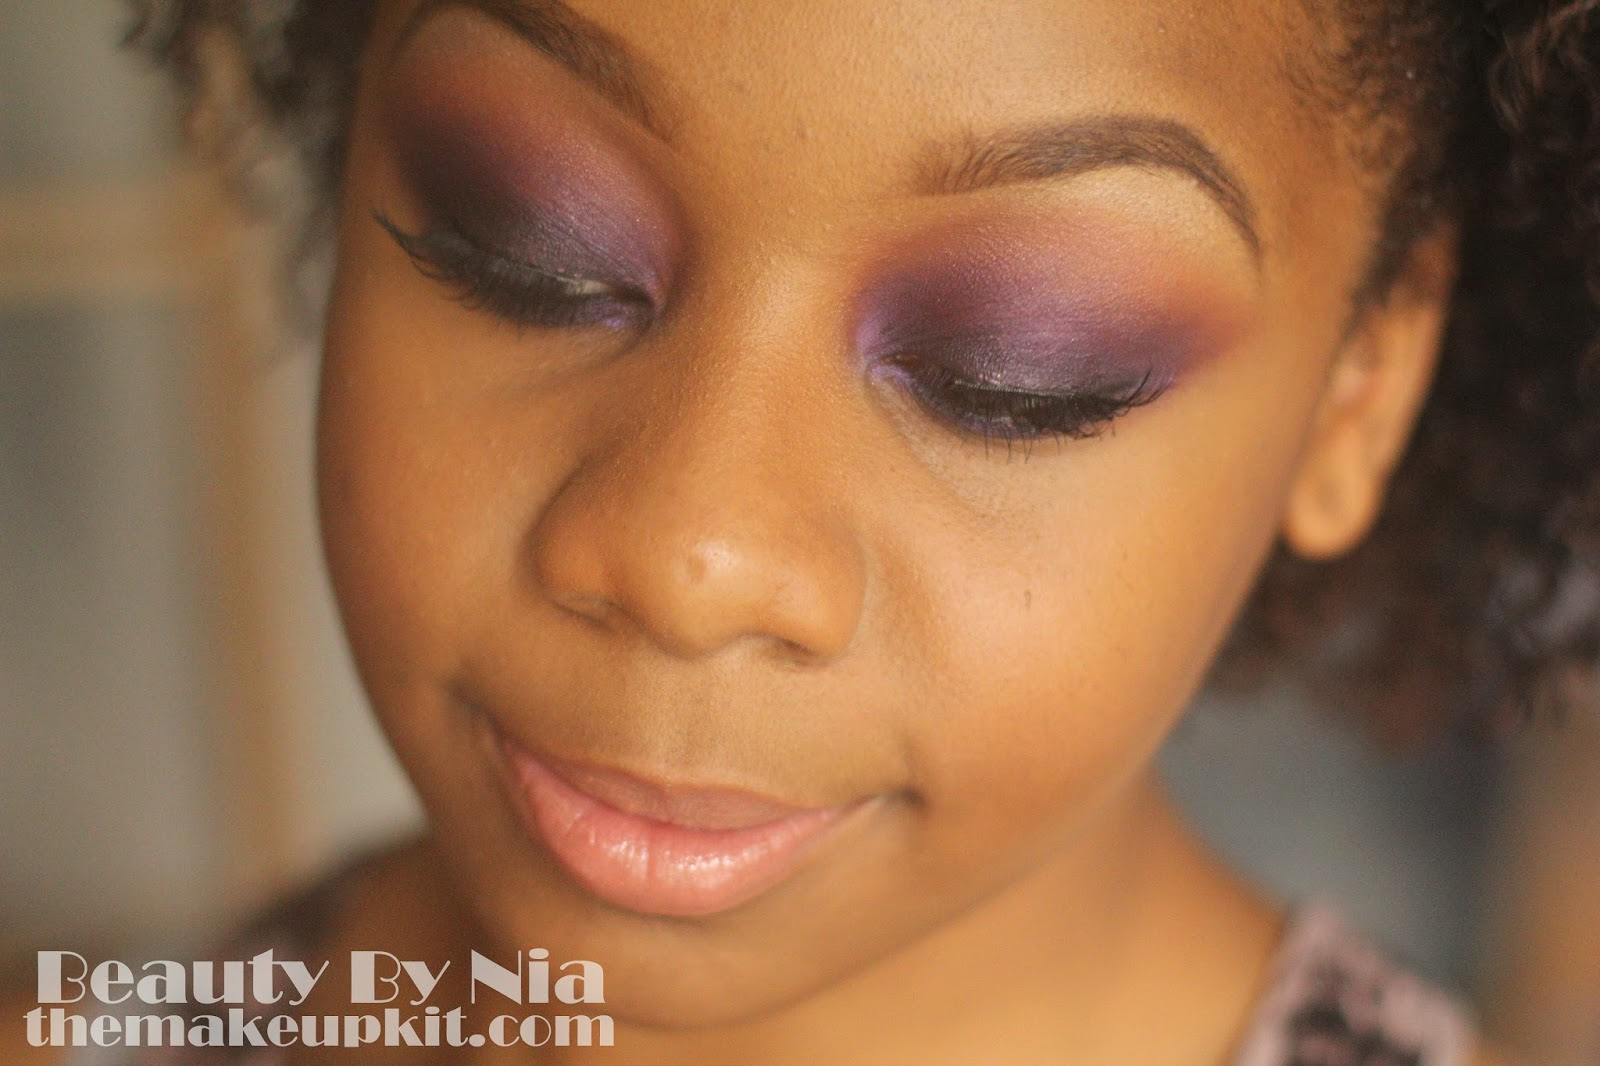 Smoked out purple eye make up look 8